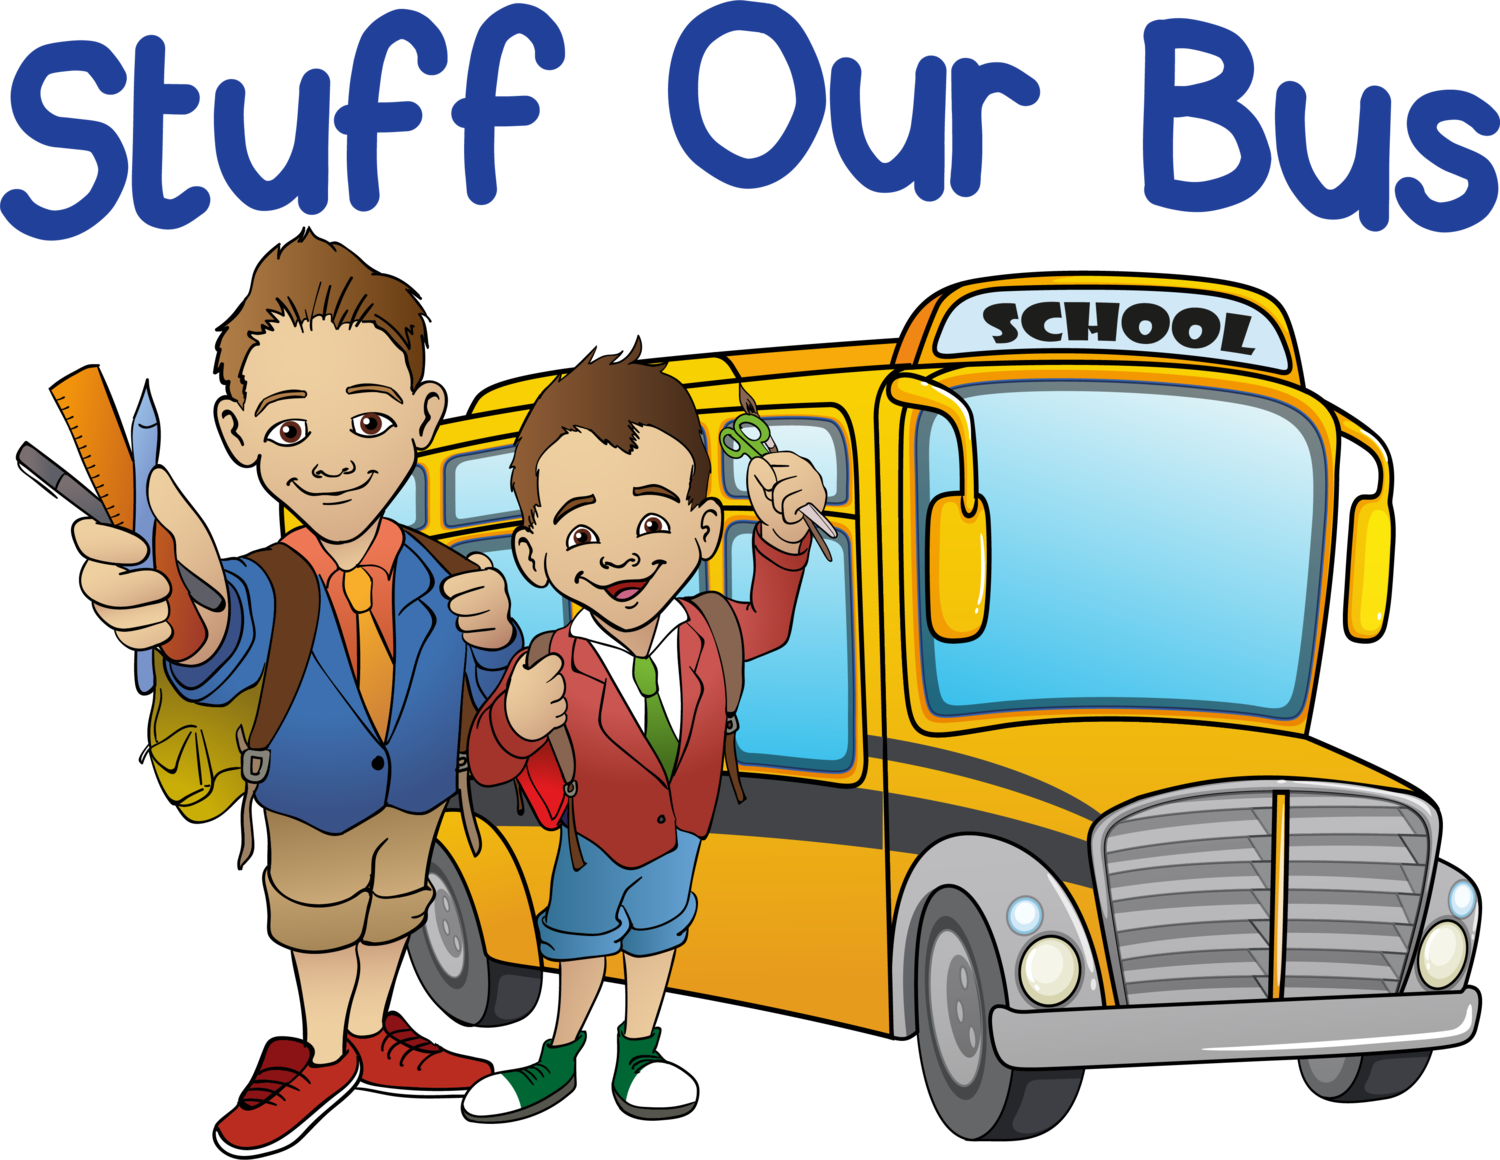 School parking lot clipart banner download The Event — Stuff Our Bus banner download